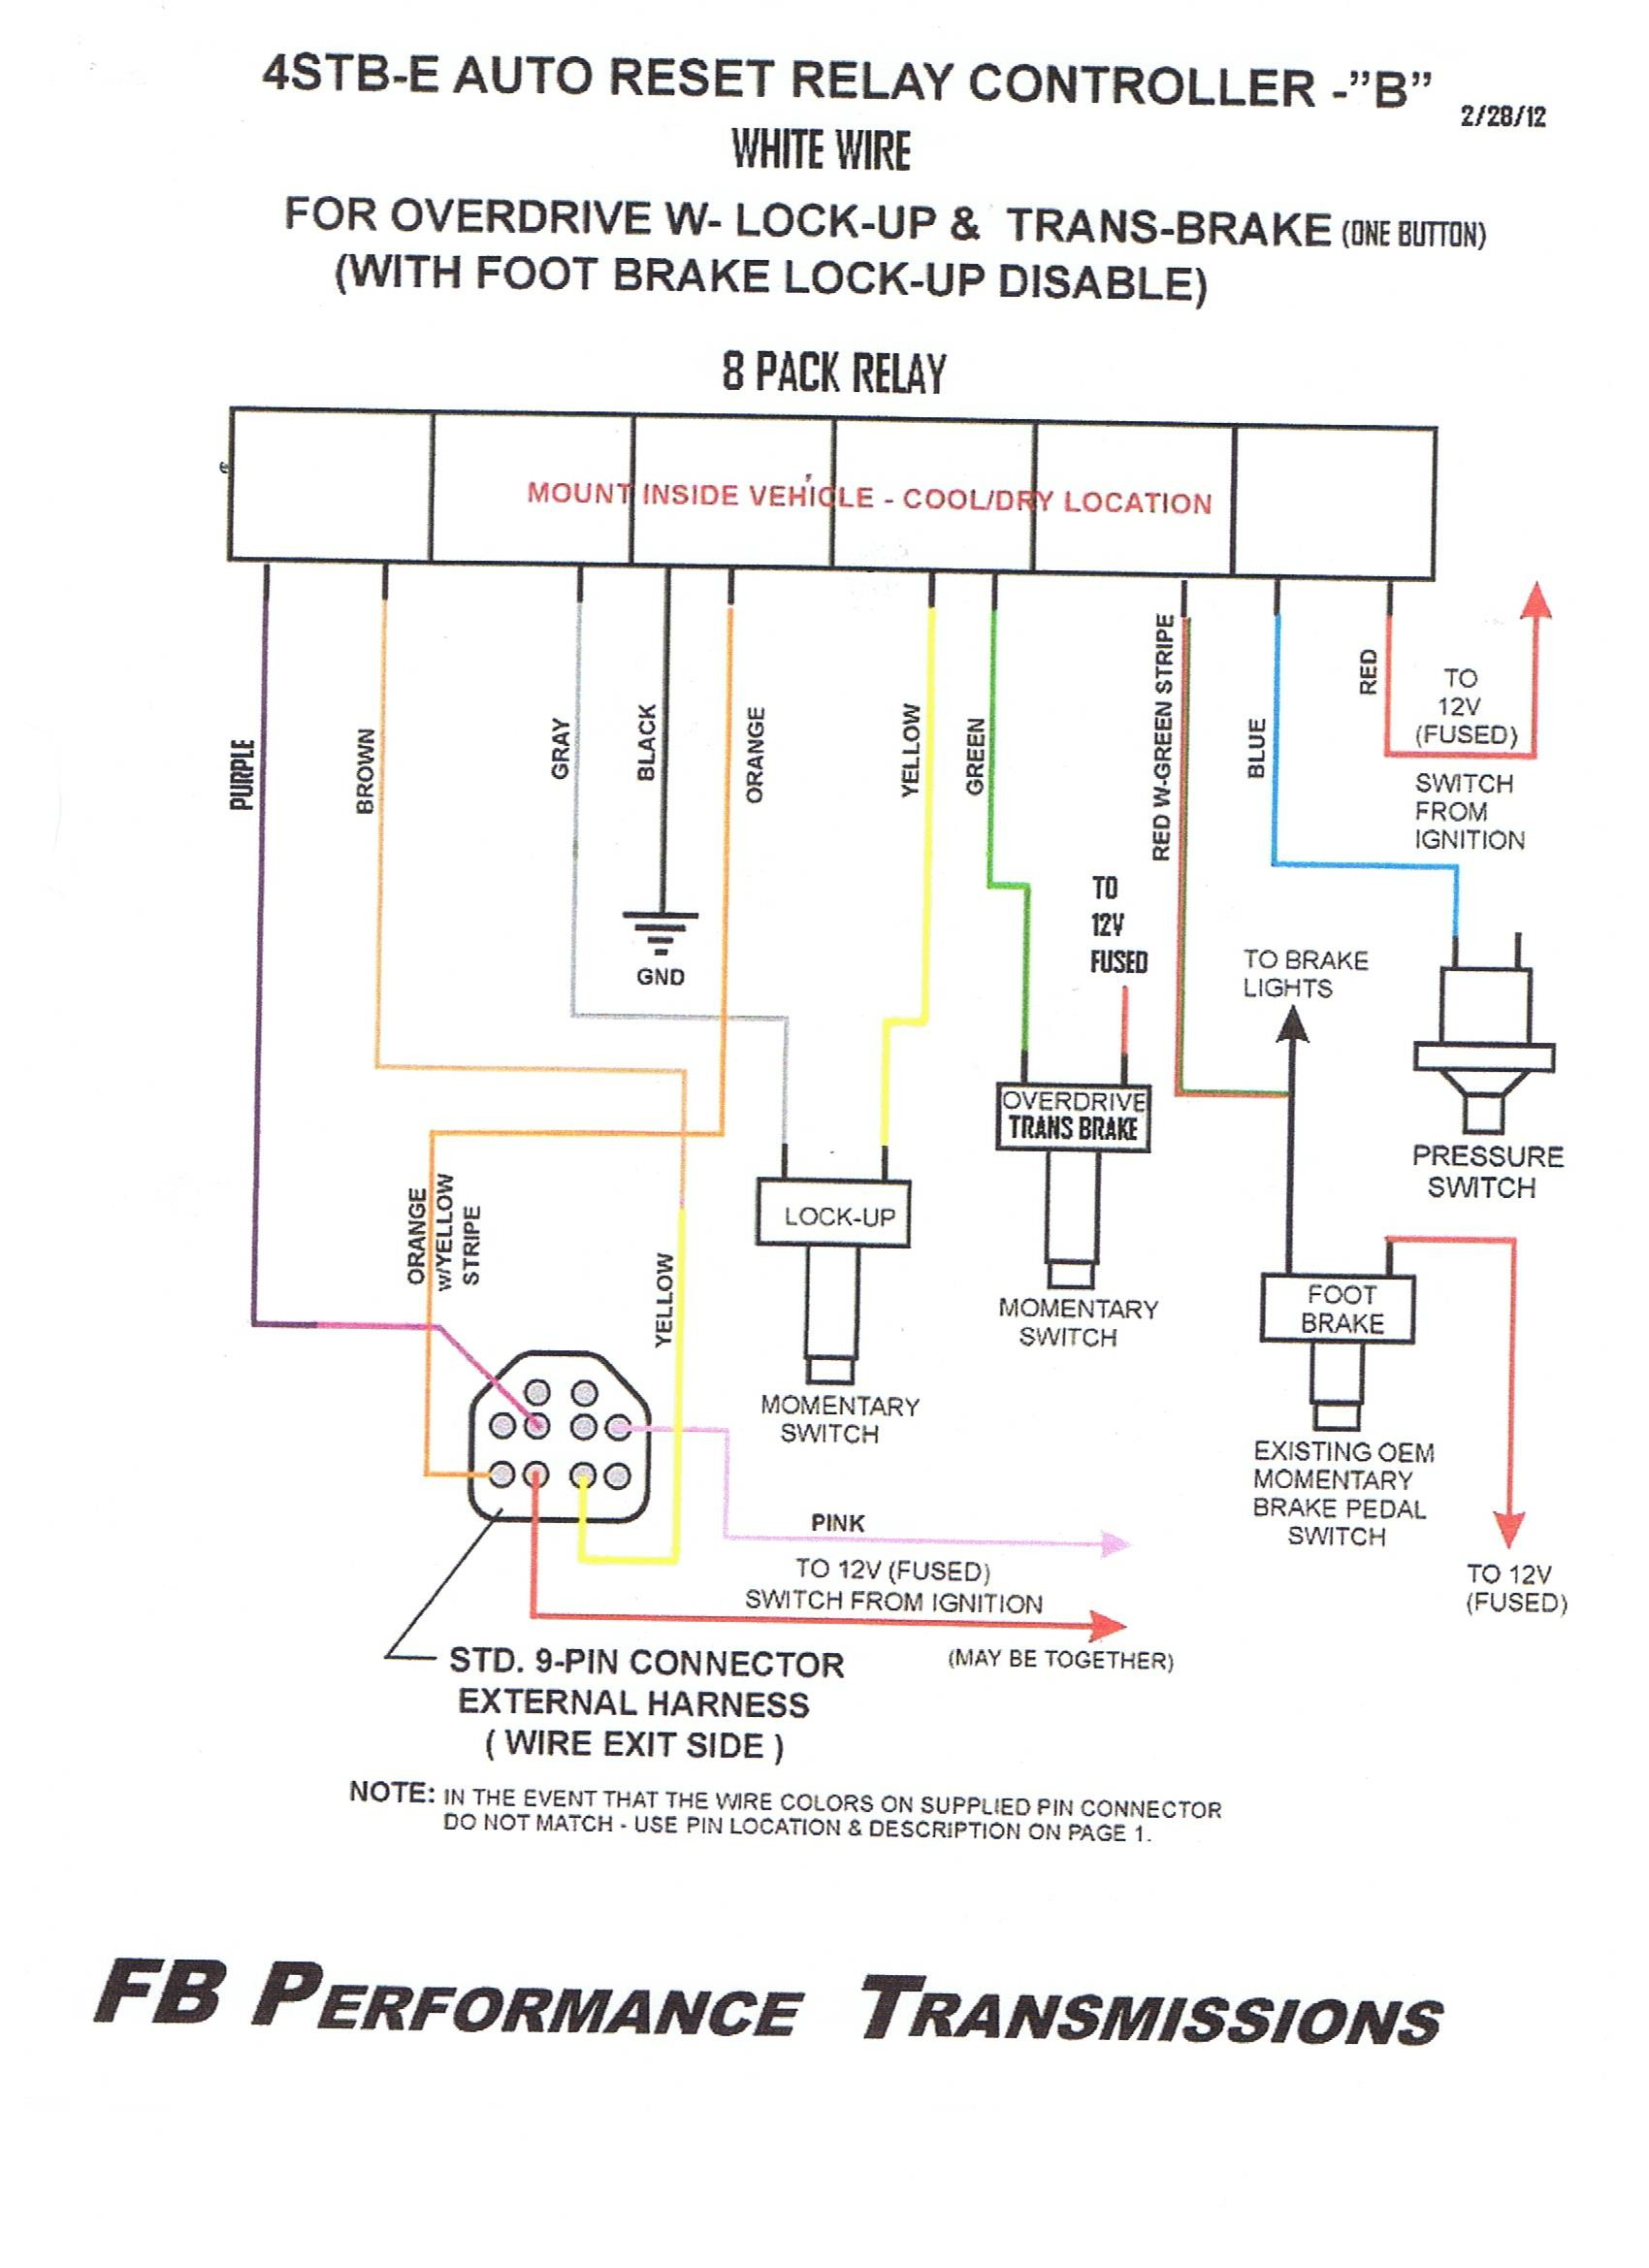 Momentary switch wiring diagram wiring diagram image wiring and operation 9 pin feb 2012 asfbconference2016 Image collections